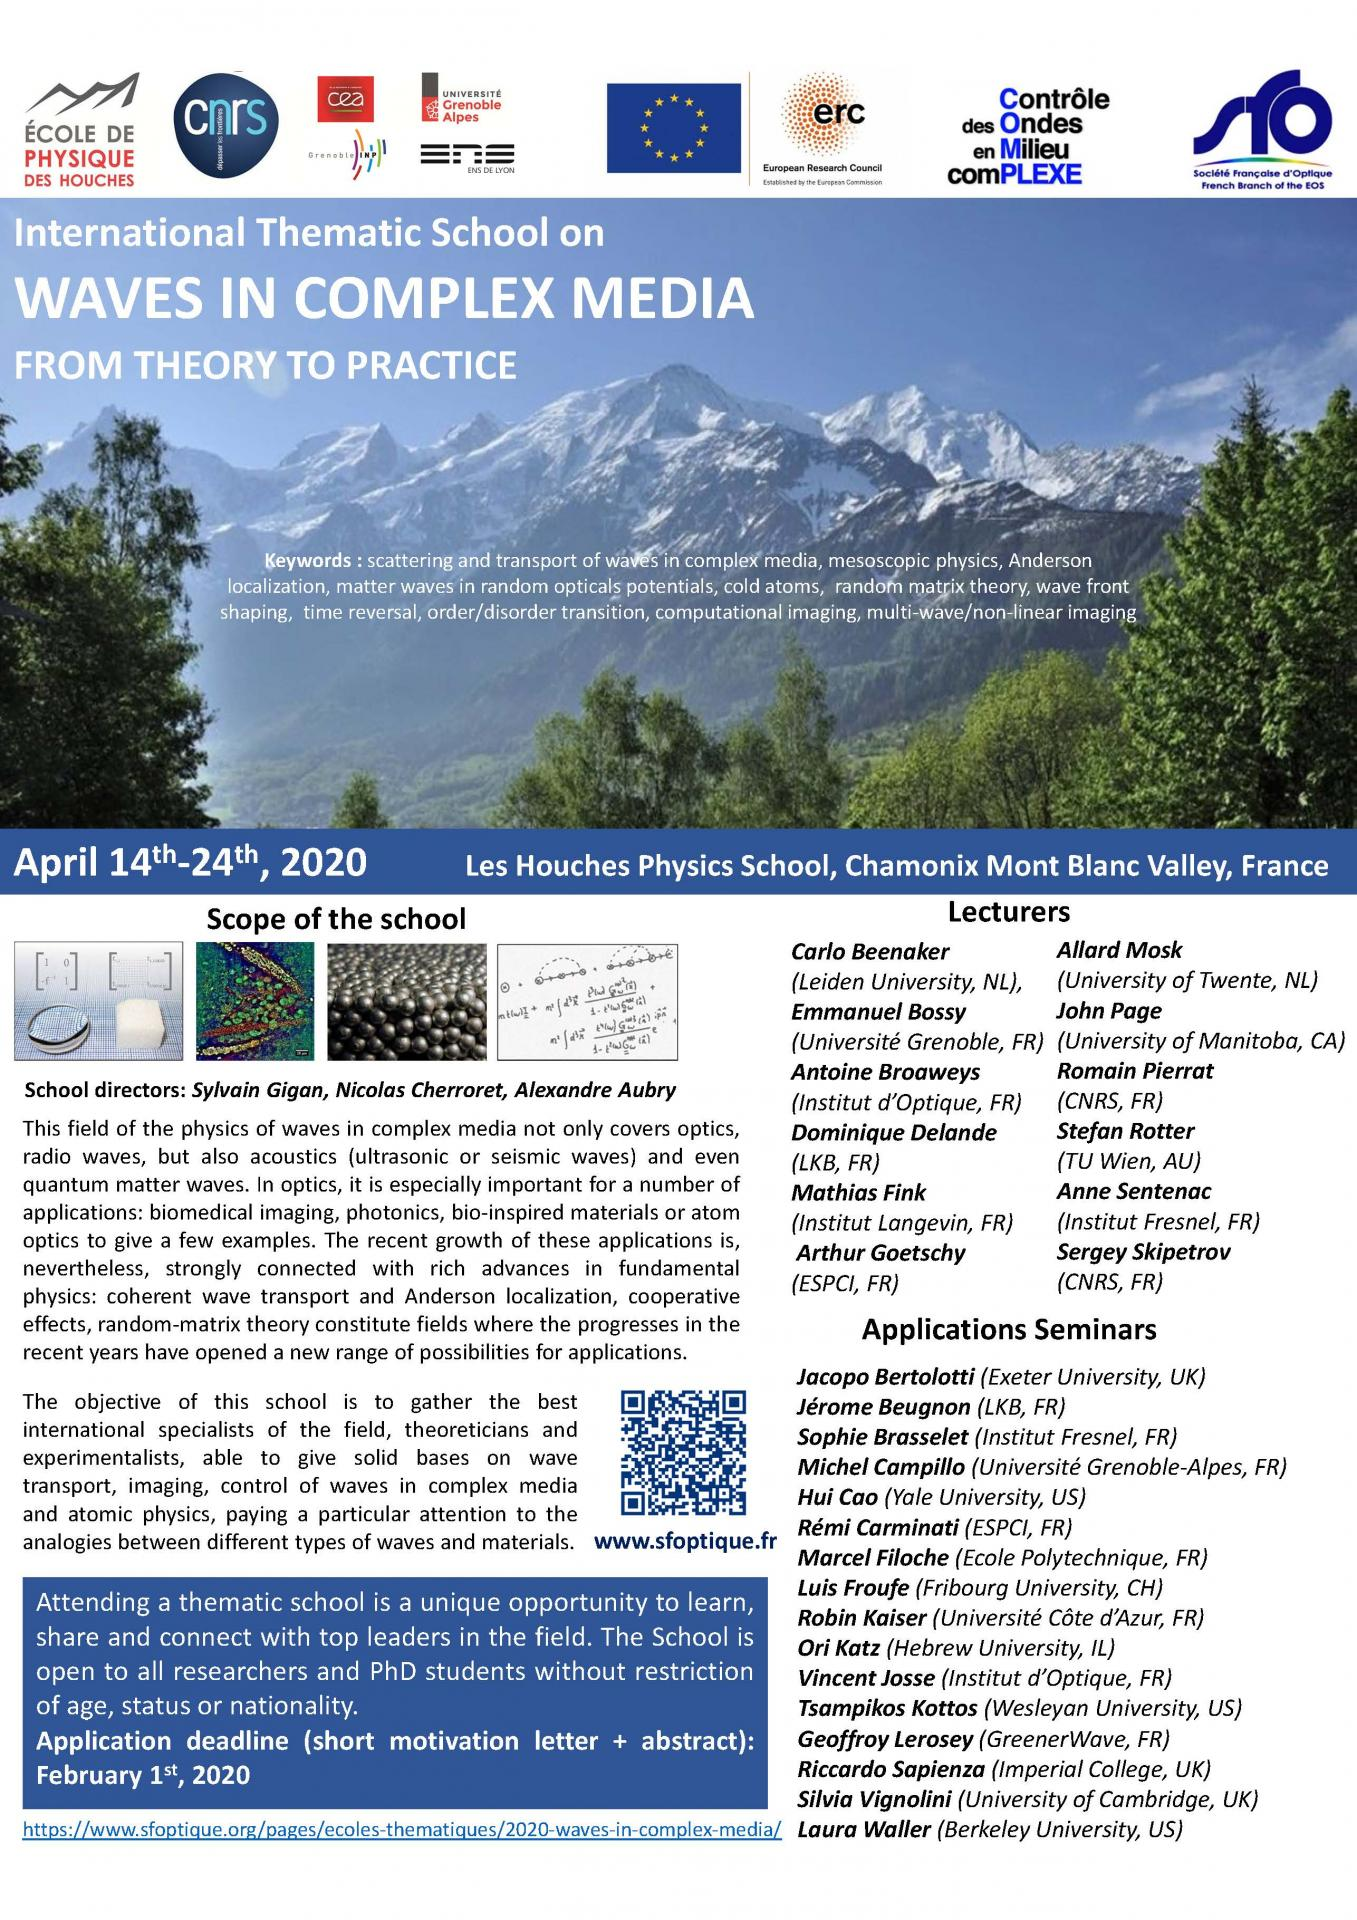 Waves in complex Media